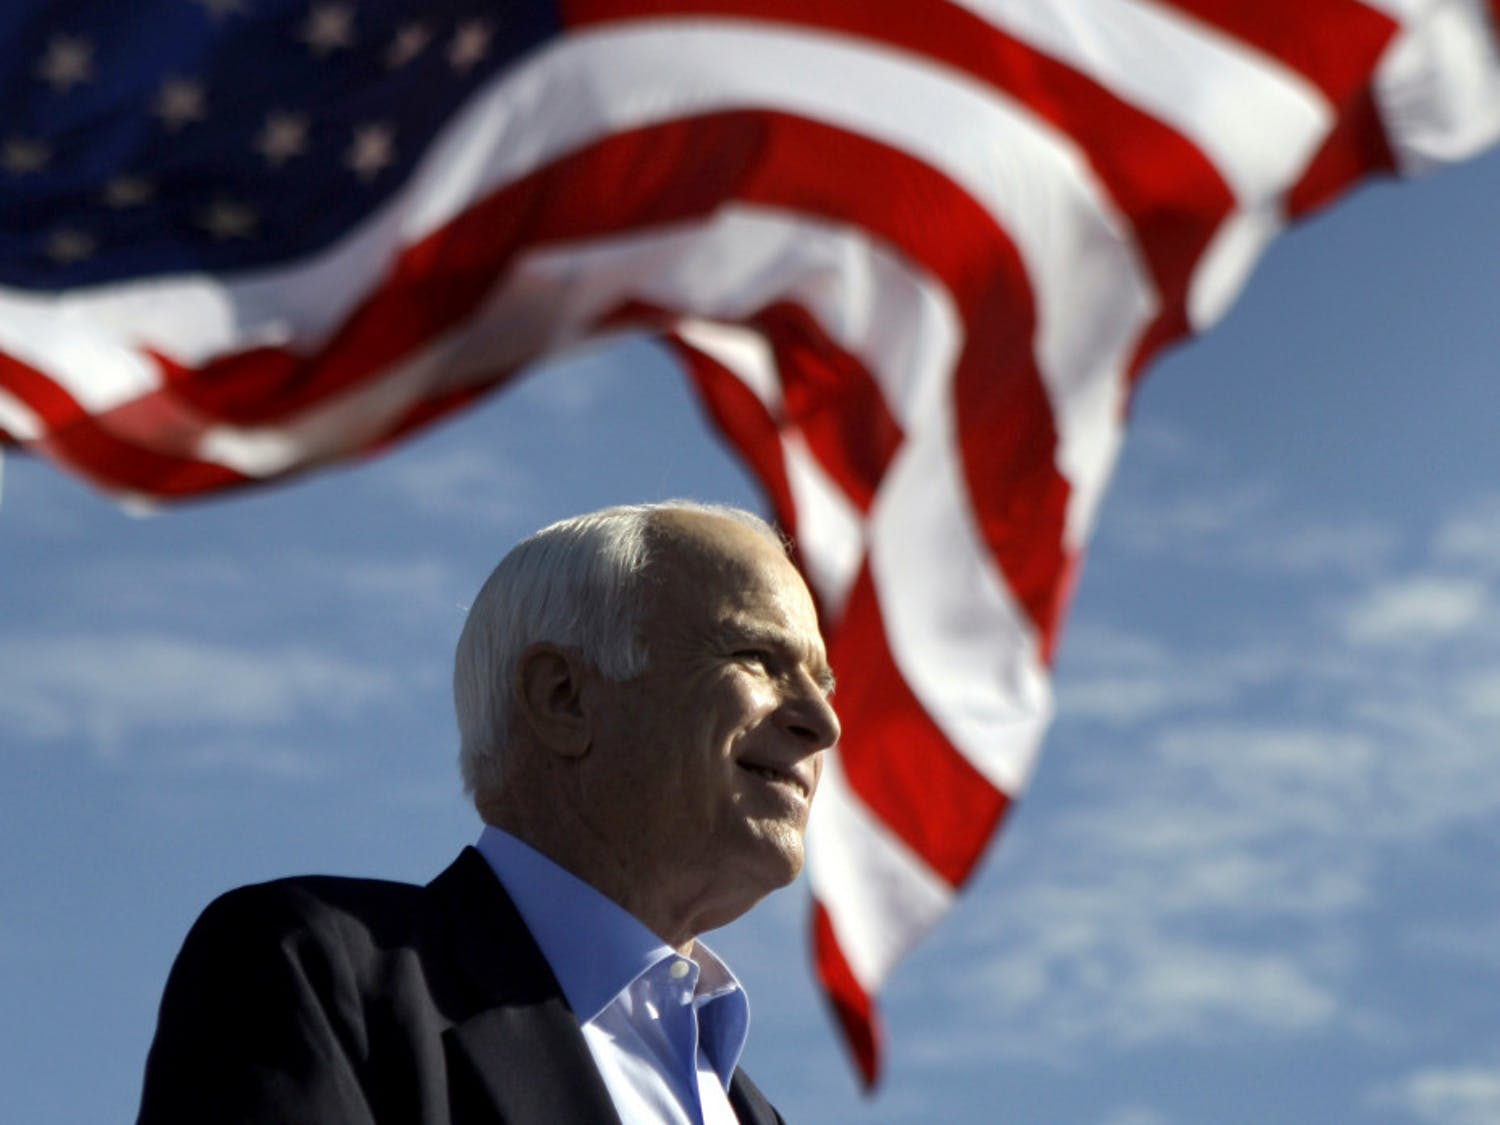 Republican presidential candidate Sen. John McCain, R-Ariz., speaks at a 2008 rally in Tampa, Fla. Aide says senator, war hero and GOP presidential candidate McCain died Saturday, Aug. 25, 2018. He was 81.